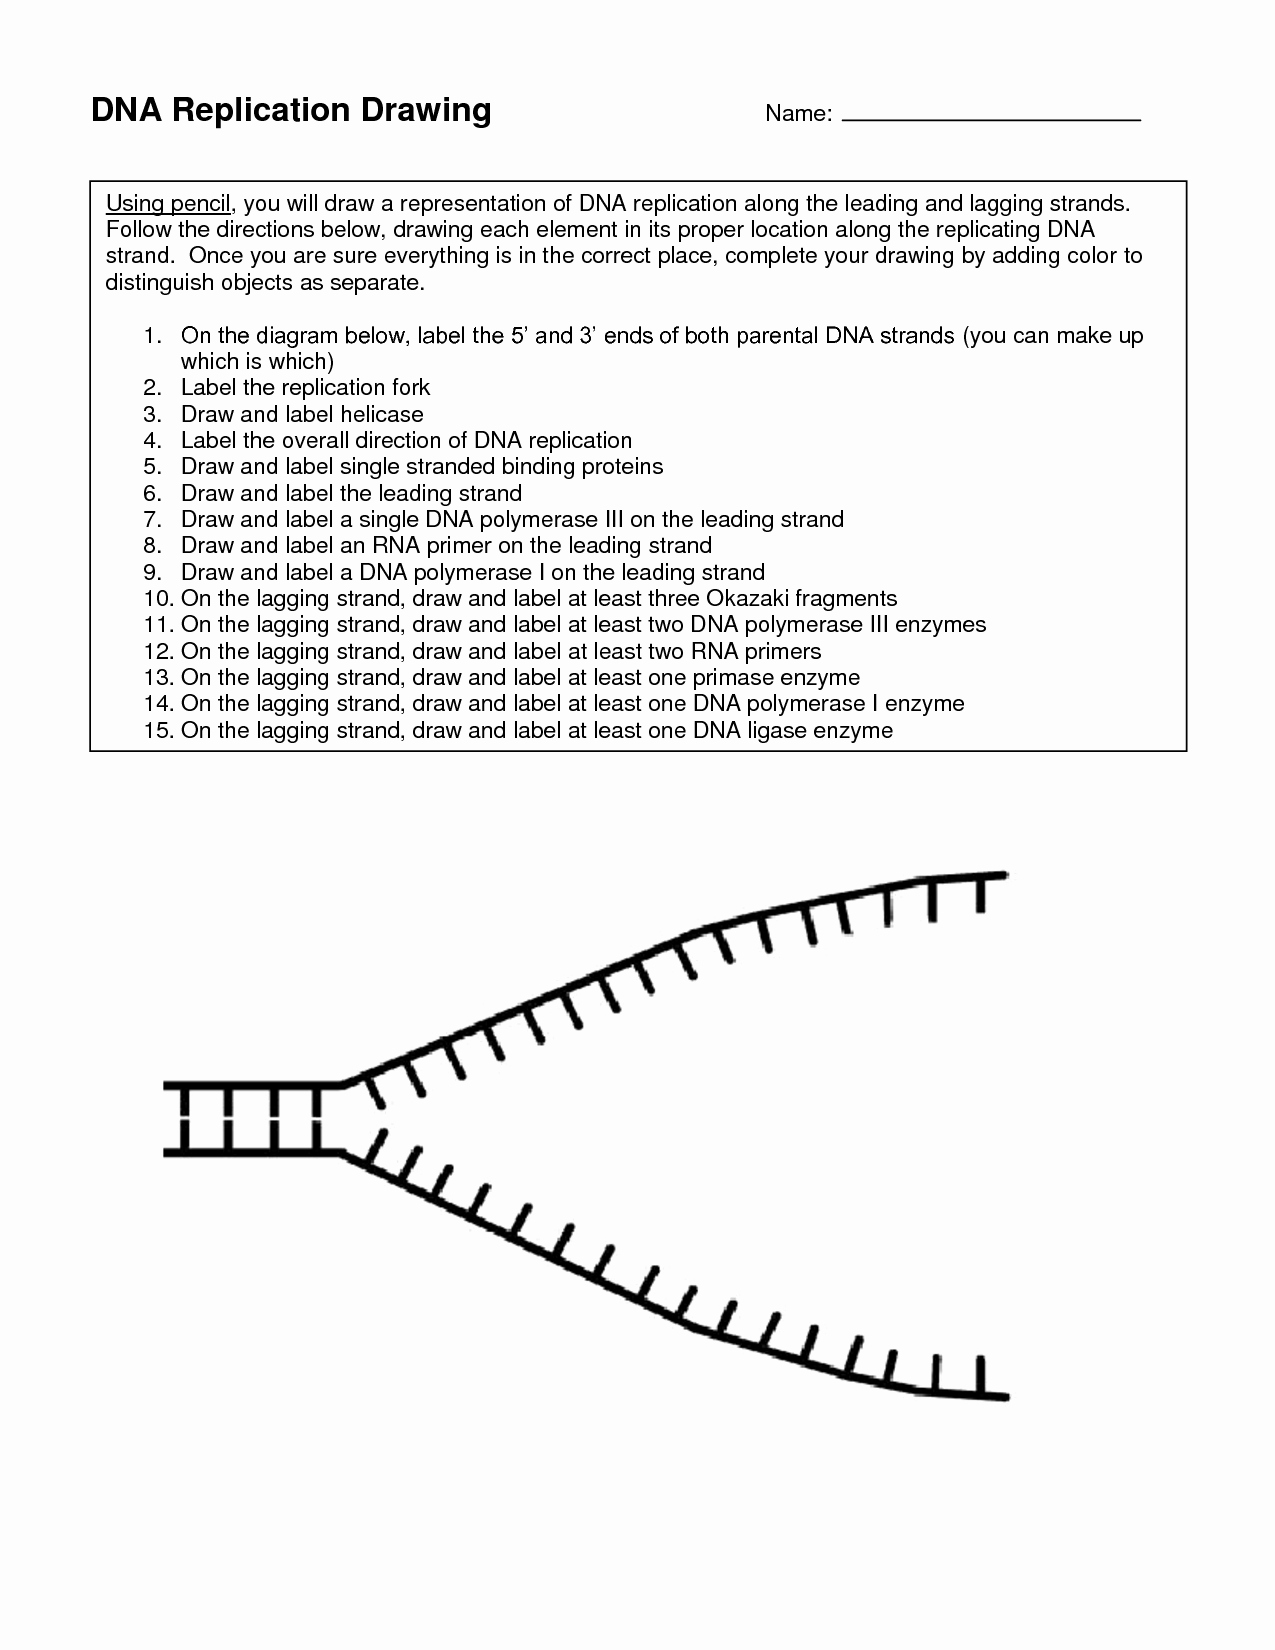 50 Dna Replication Worksheet Answers | Chessmuseum ...